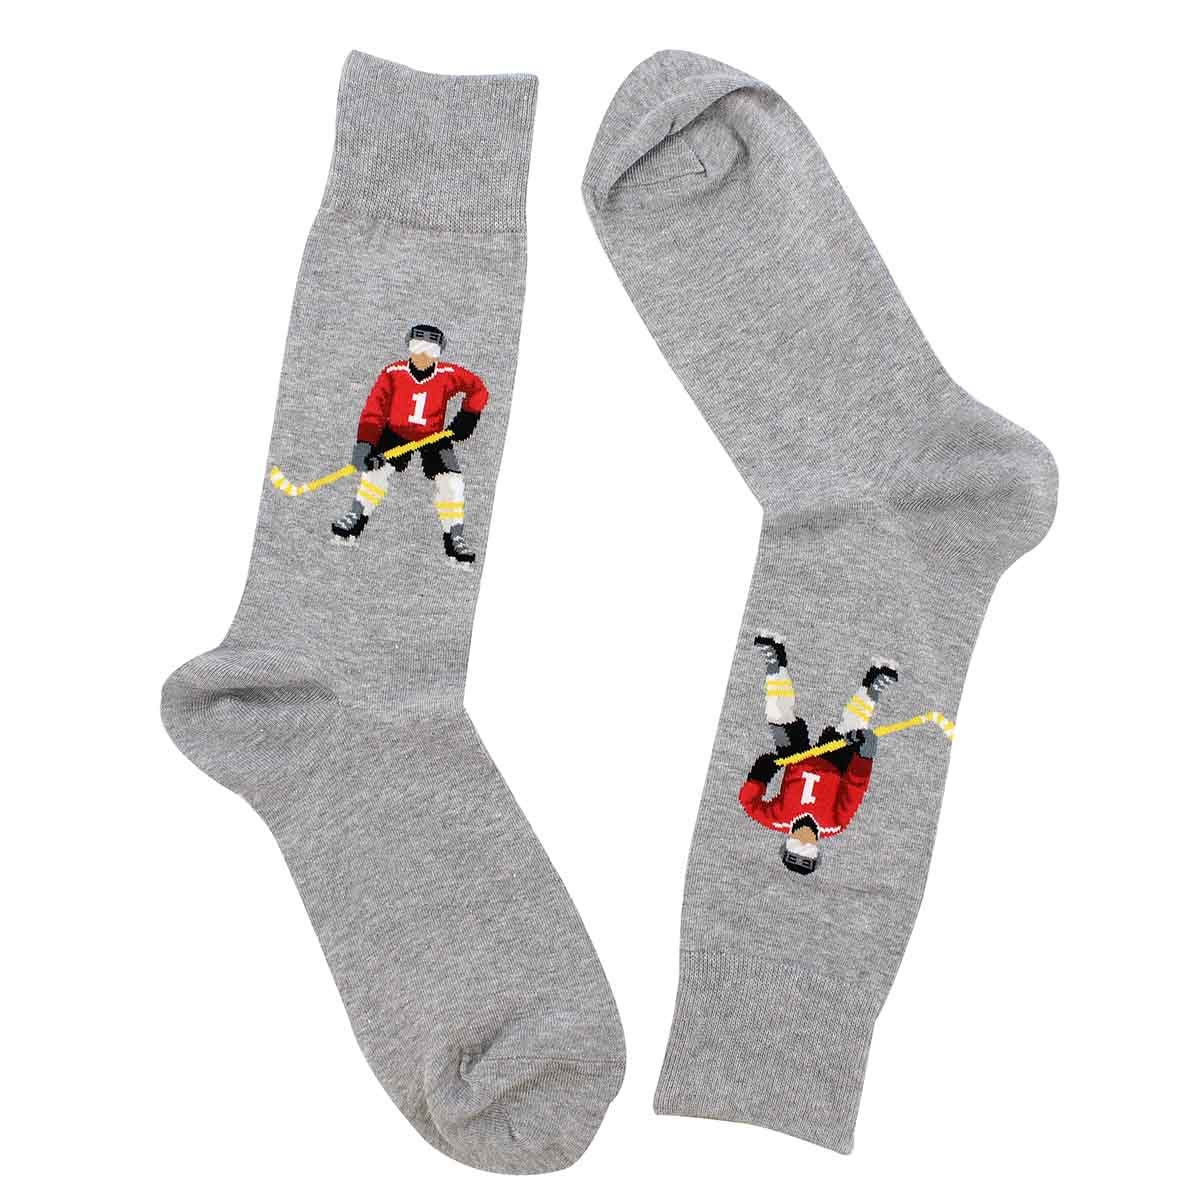 Mns Hockey Player grey printed sock